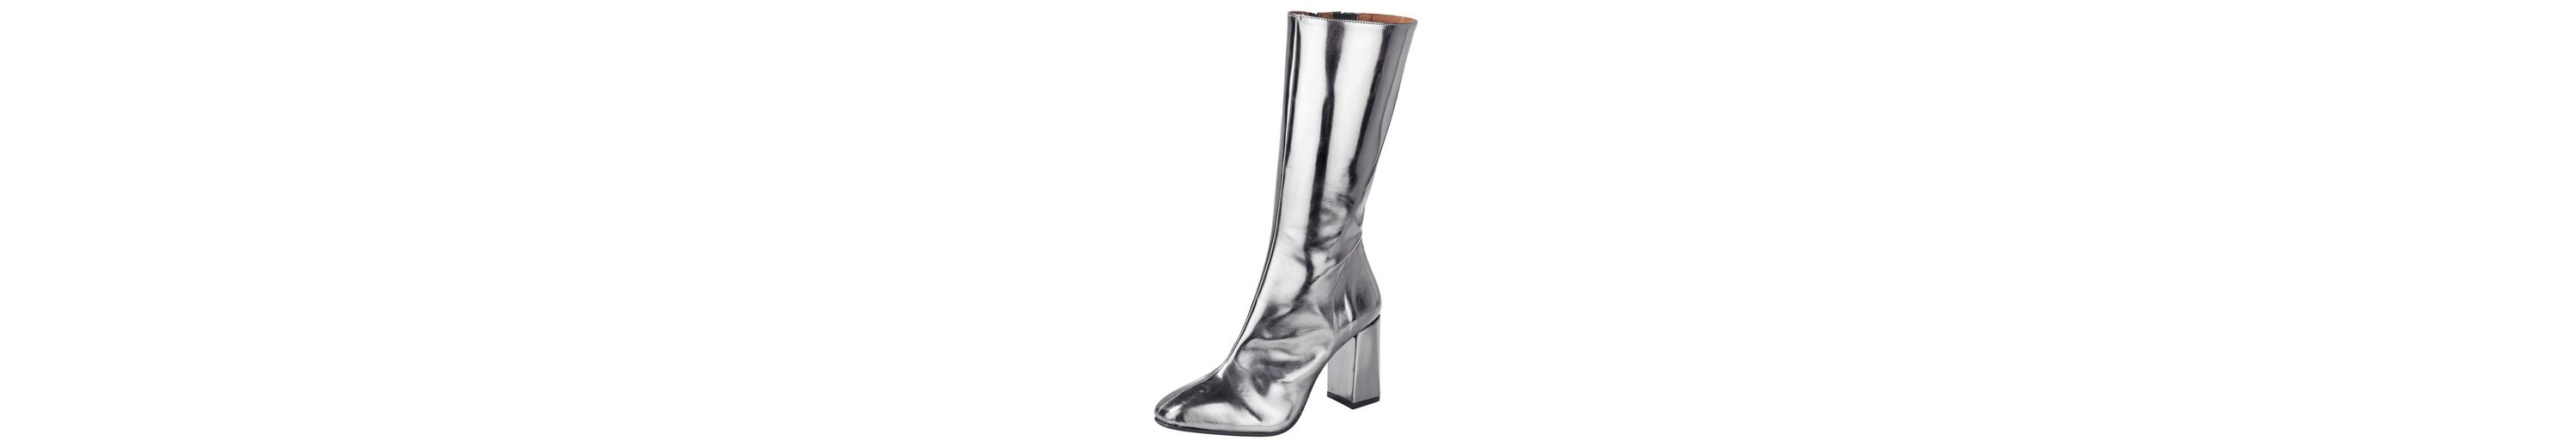 Heine Stiefel im Metallic-Look